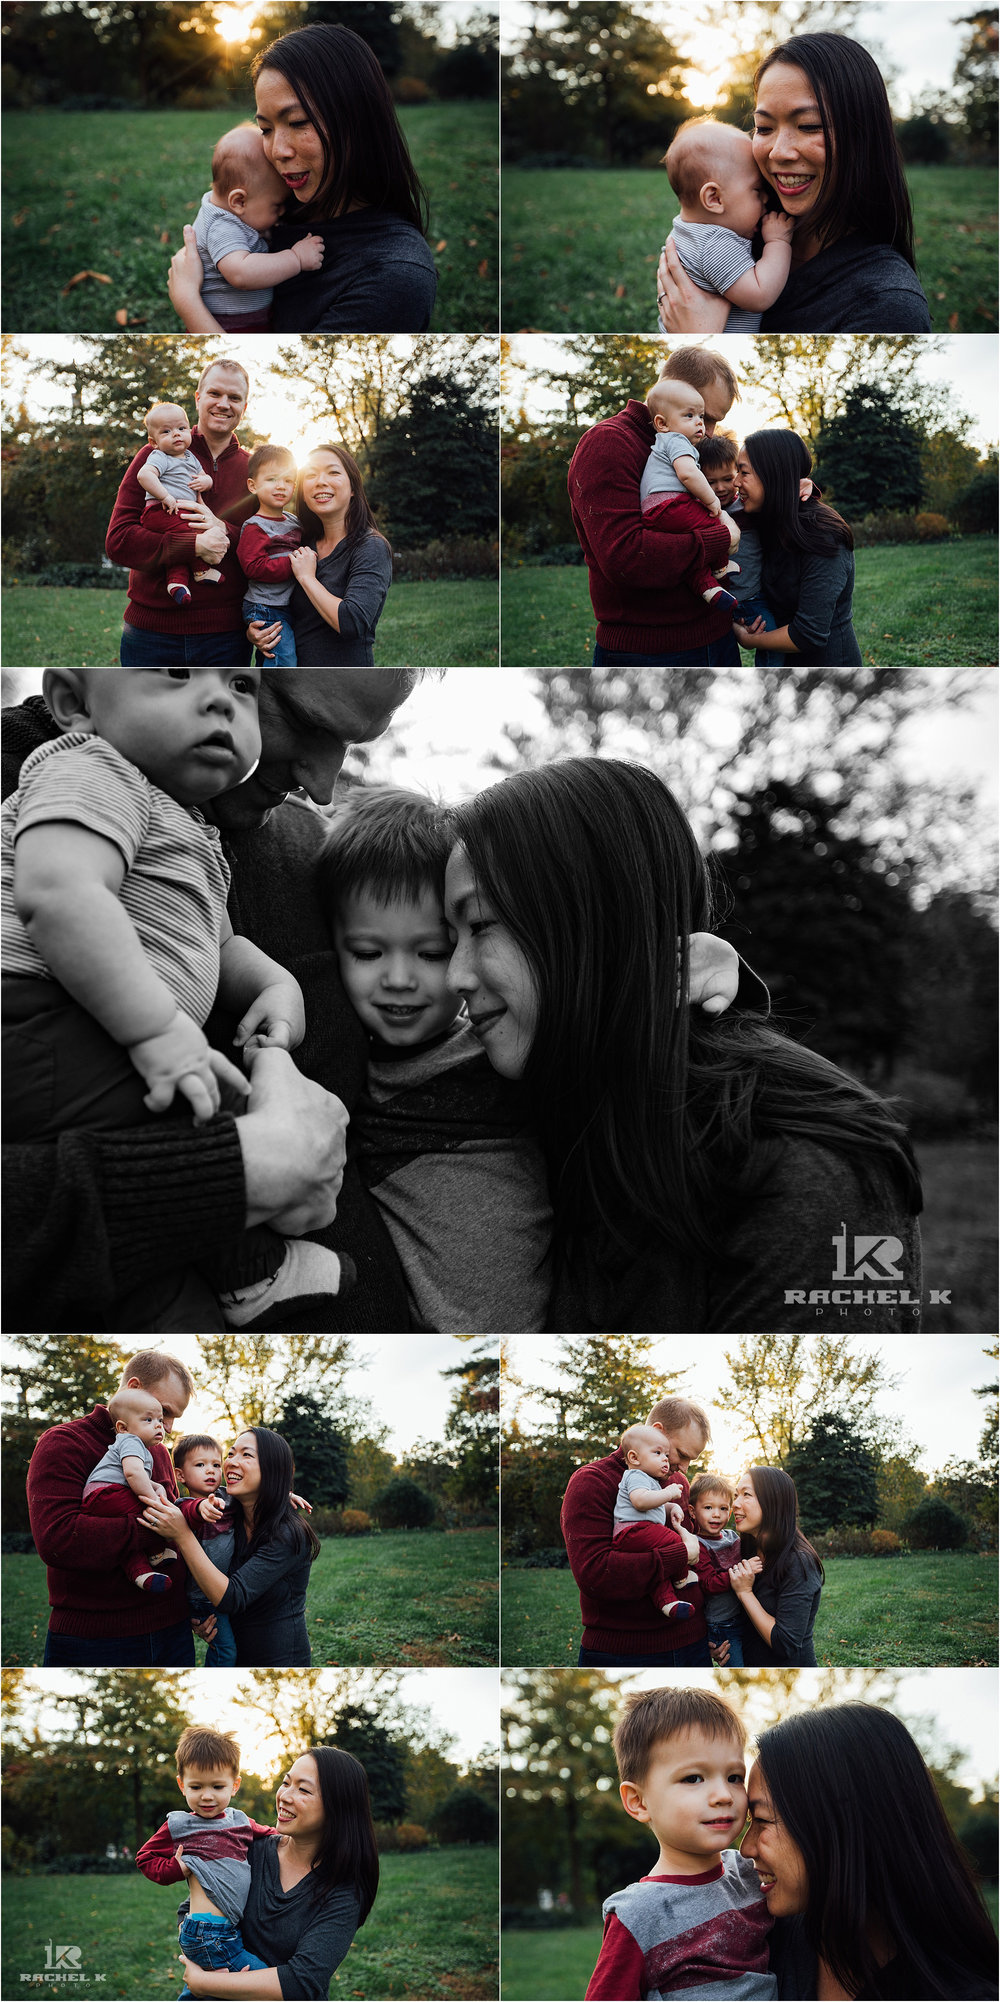 NOVA lifestyle family session at Green Springs Gardens by Rachel K Photo